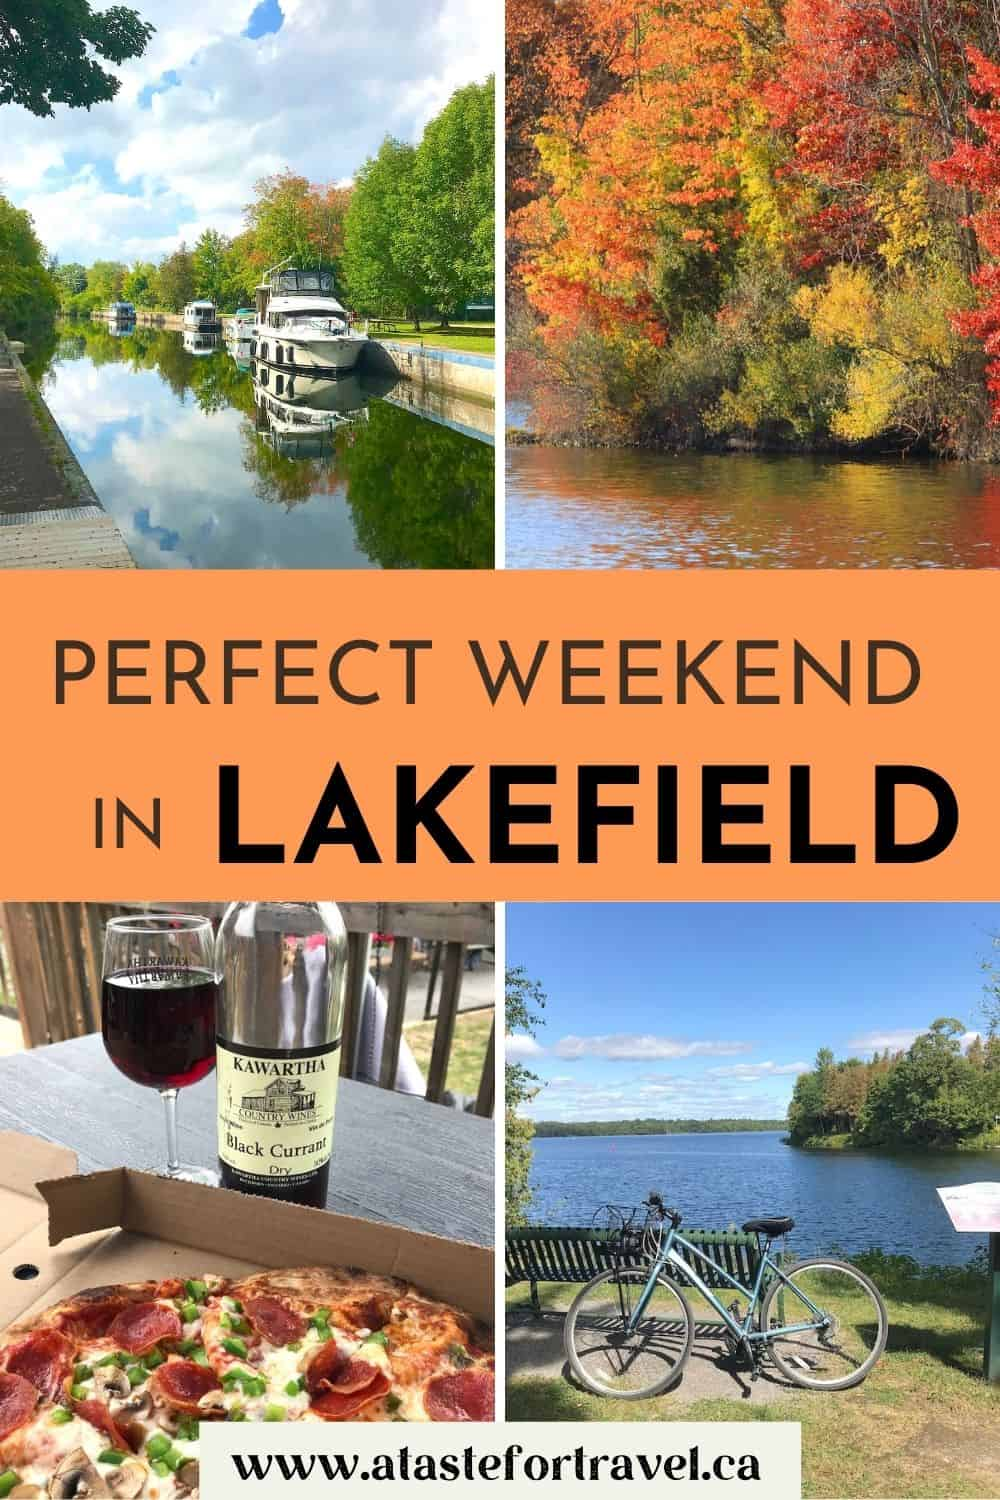 Collage of images of Lakefield for Pinterest.